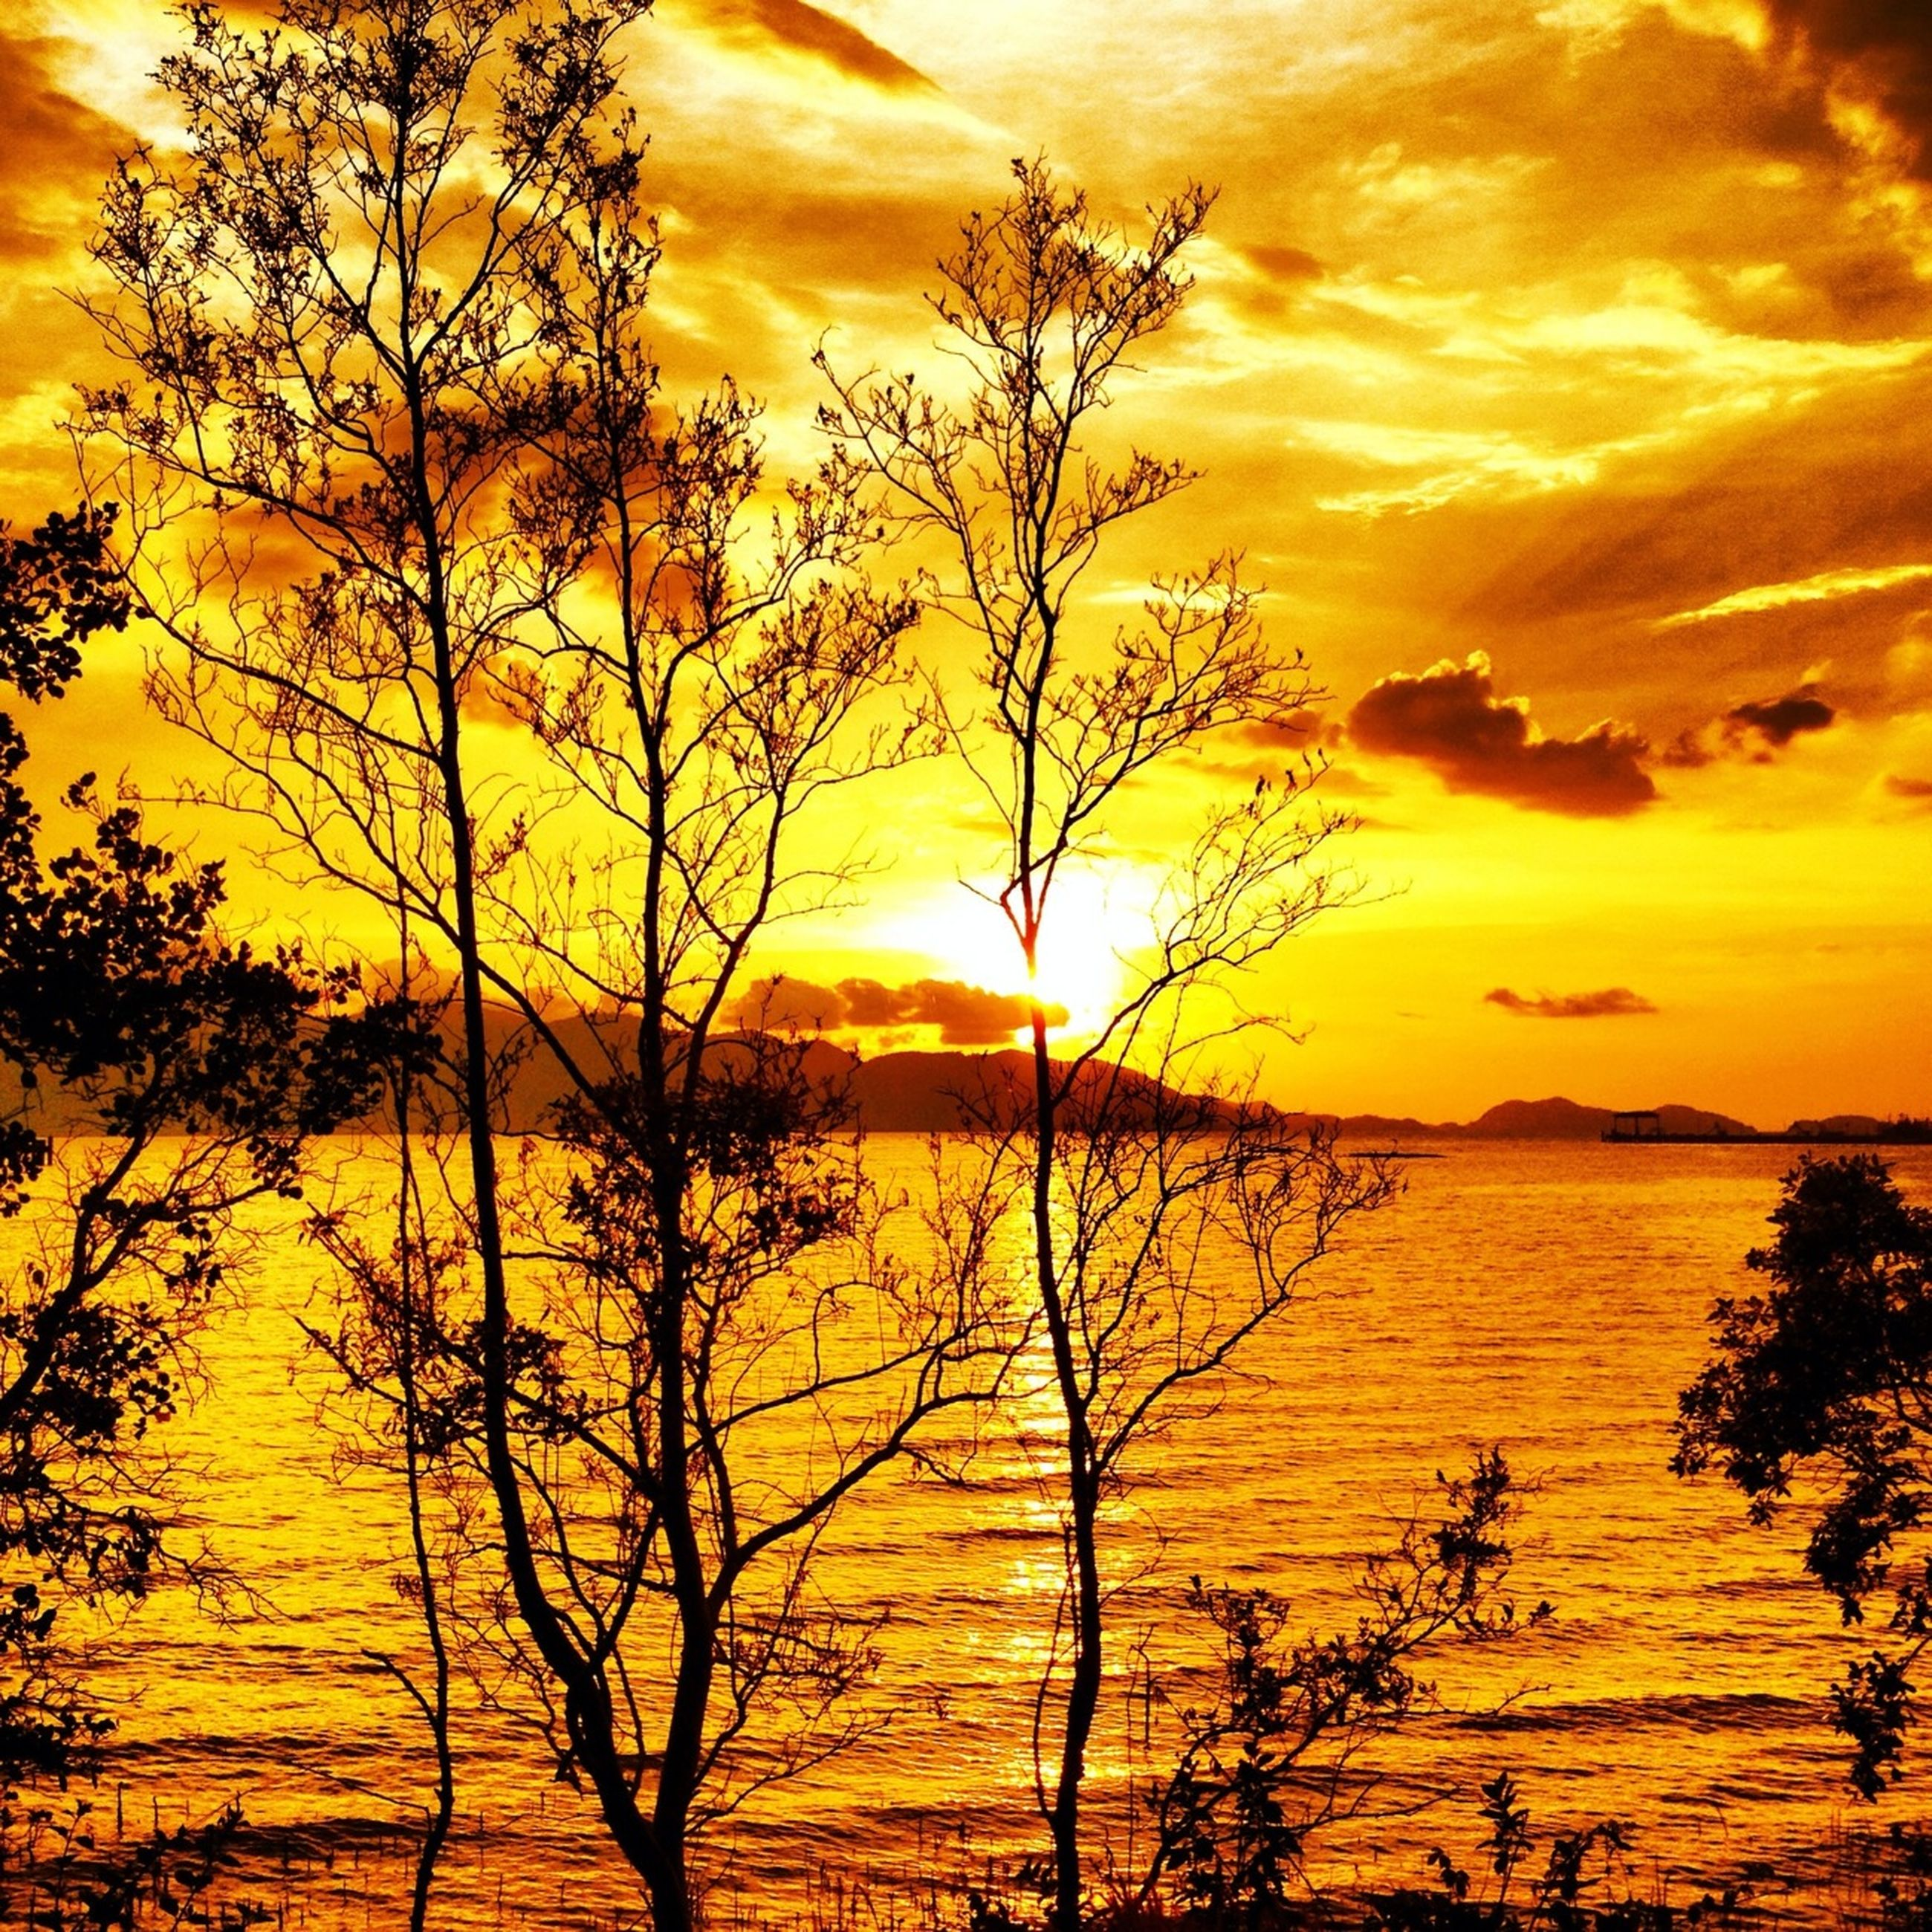 sunset, orange color, scenics, tranquil scene, beauty in nature, tranquility, sky, water, idyllic, silhouette, nature, sun, tree, branch, sea, majestic, dramatic sky, cloud - sky, bare tree, horizon over water